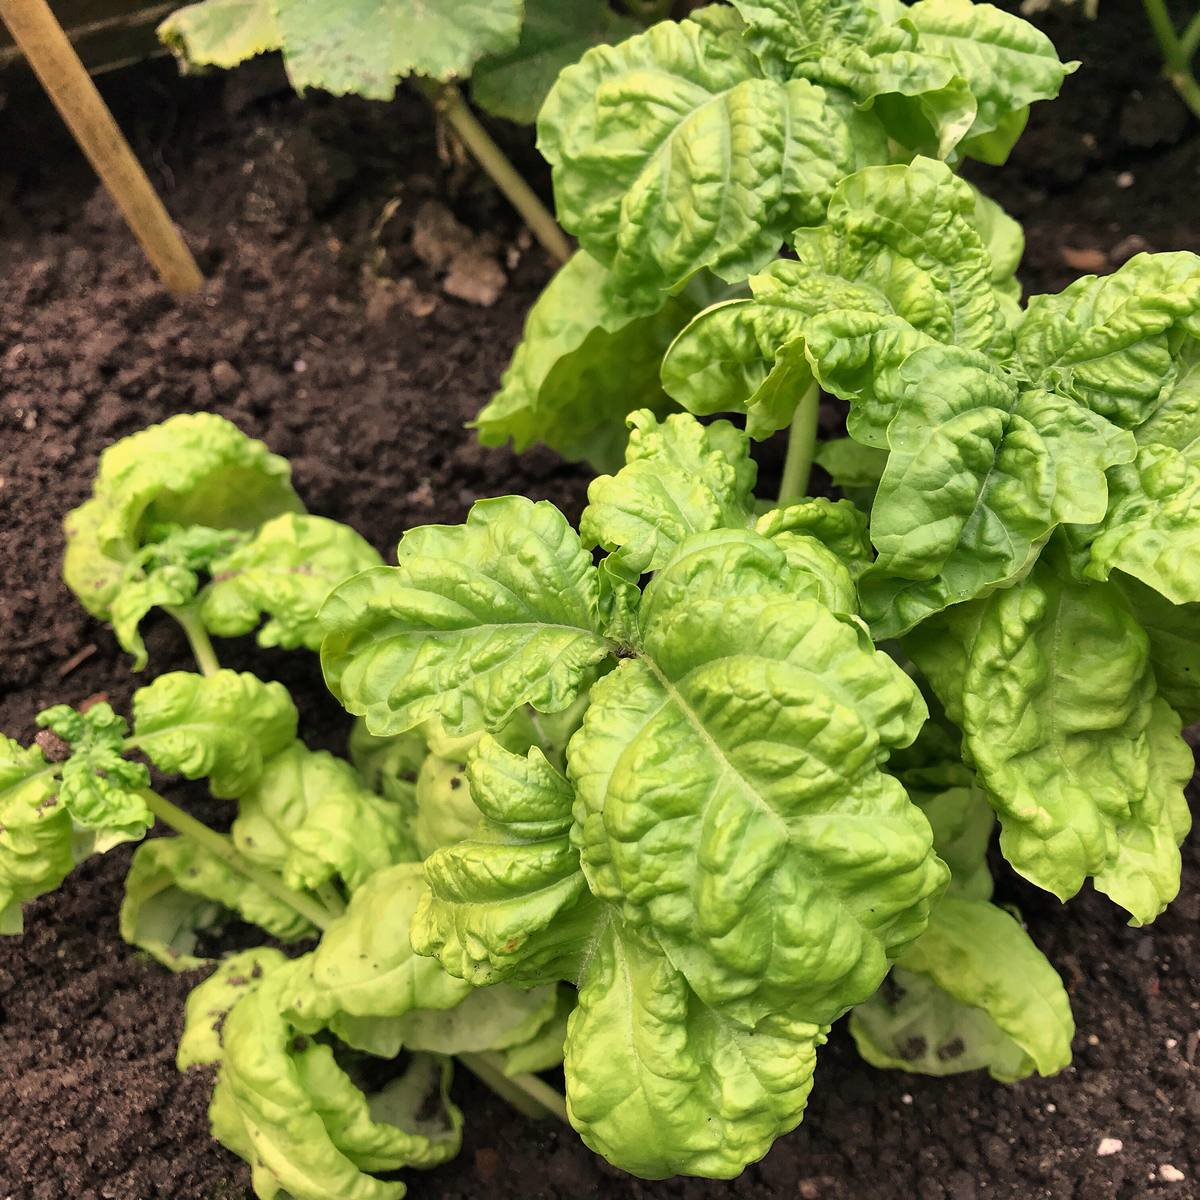 Sweet basil growing outdoors. It is the best variety of basil to make pesto sauce.